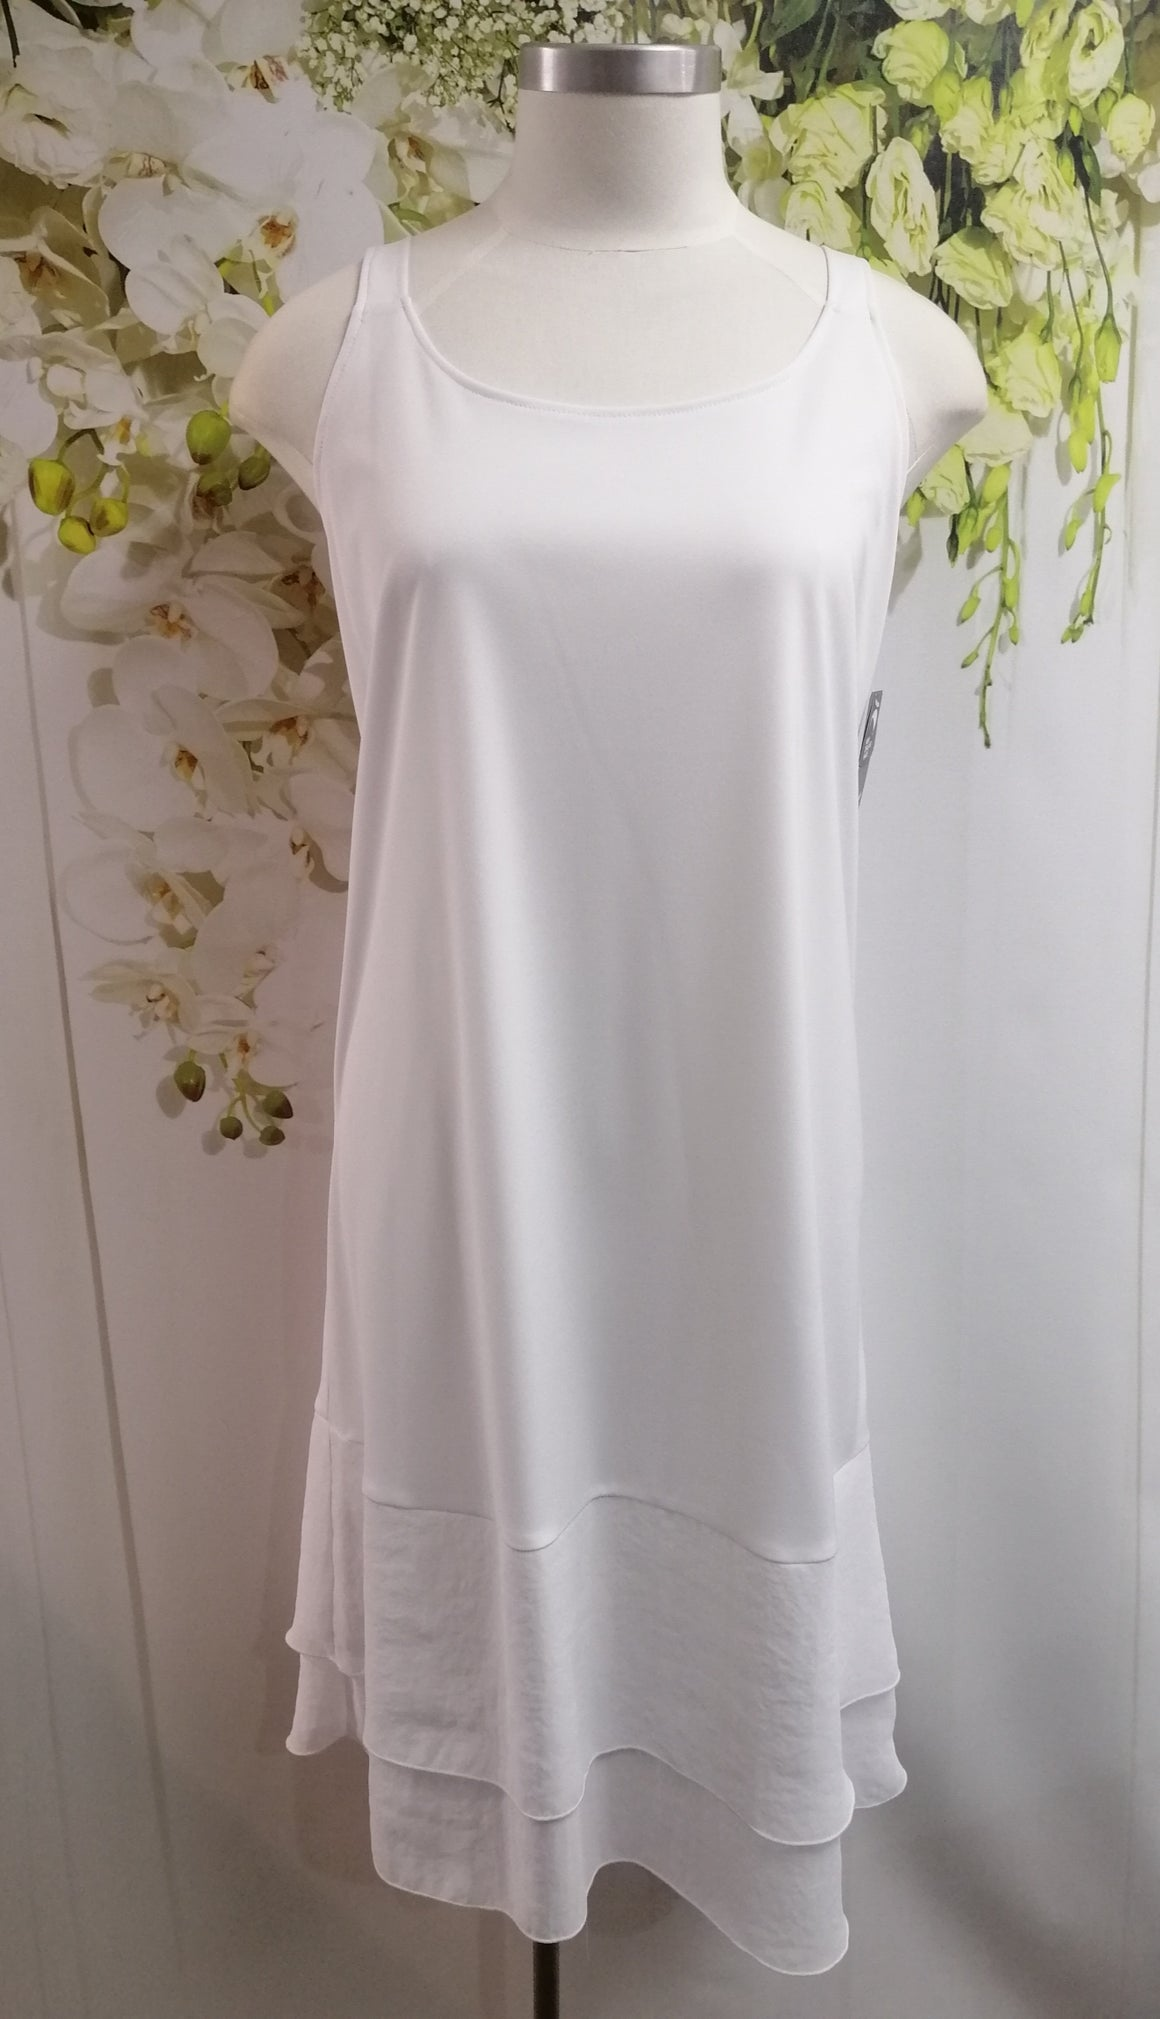 Cashews Under Slip with Chiffon Hem - White  B61 - Fashion Focus